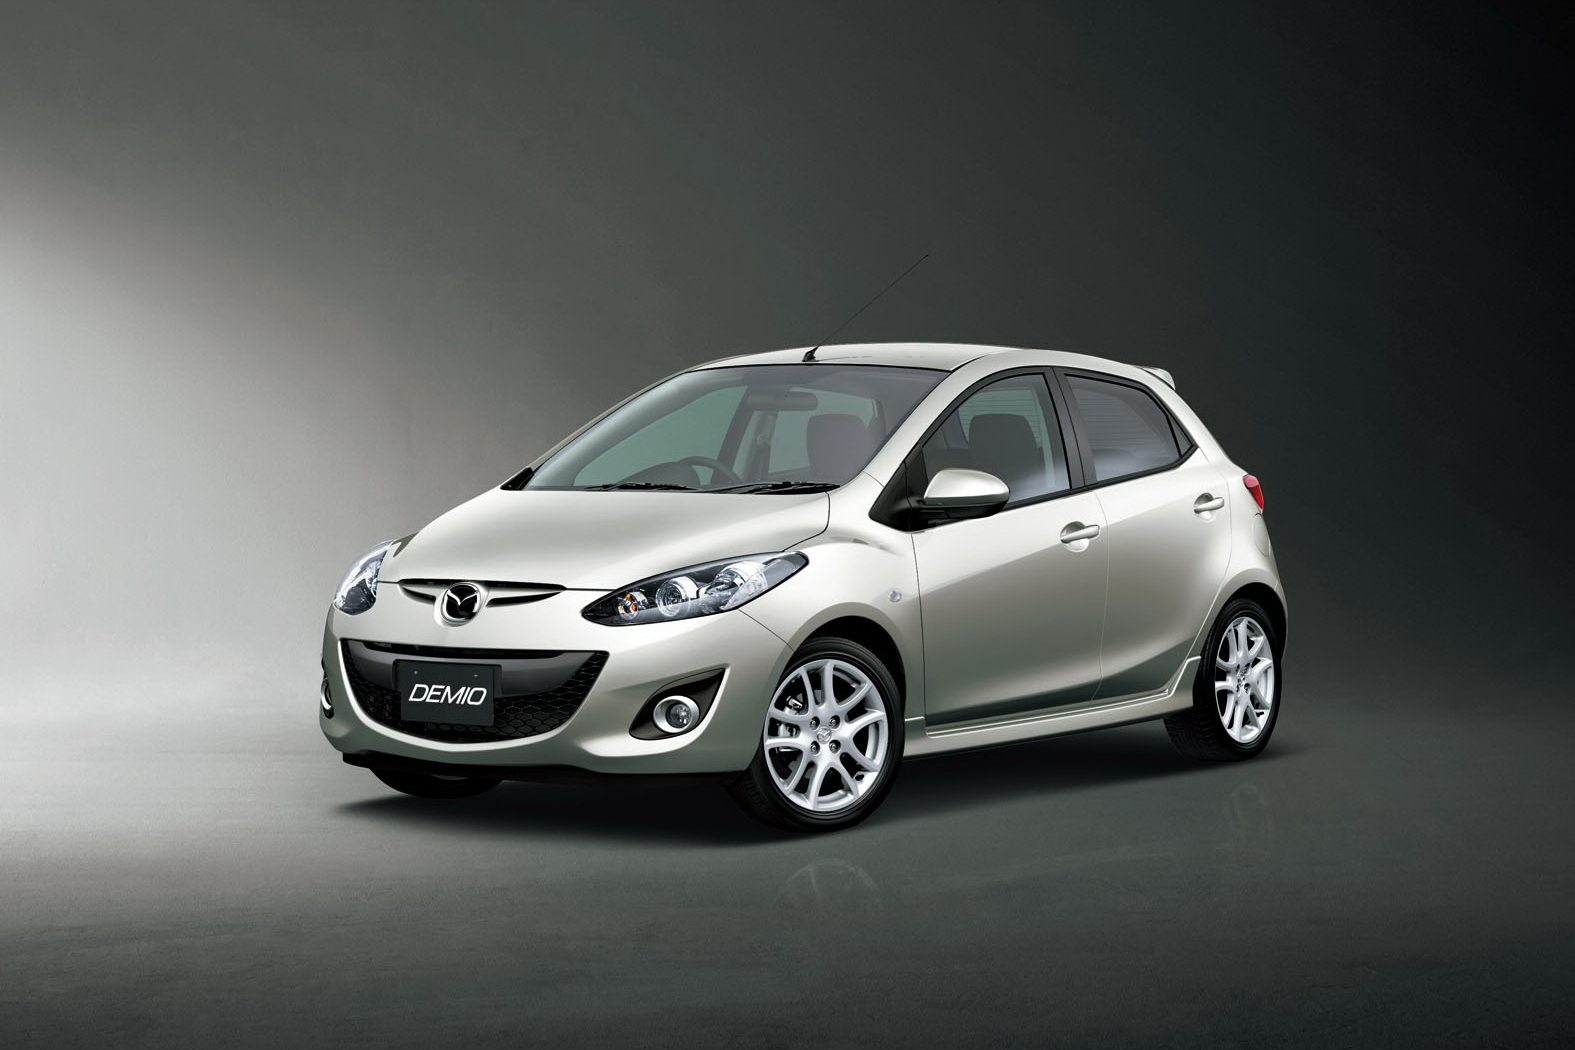 2012 Mazda Demio 13 Skyactiv Arrives In Japan Image Gallery 2 Fuse Box